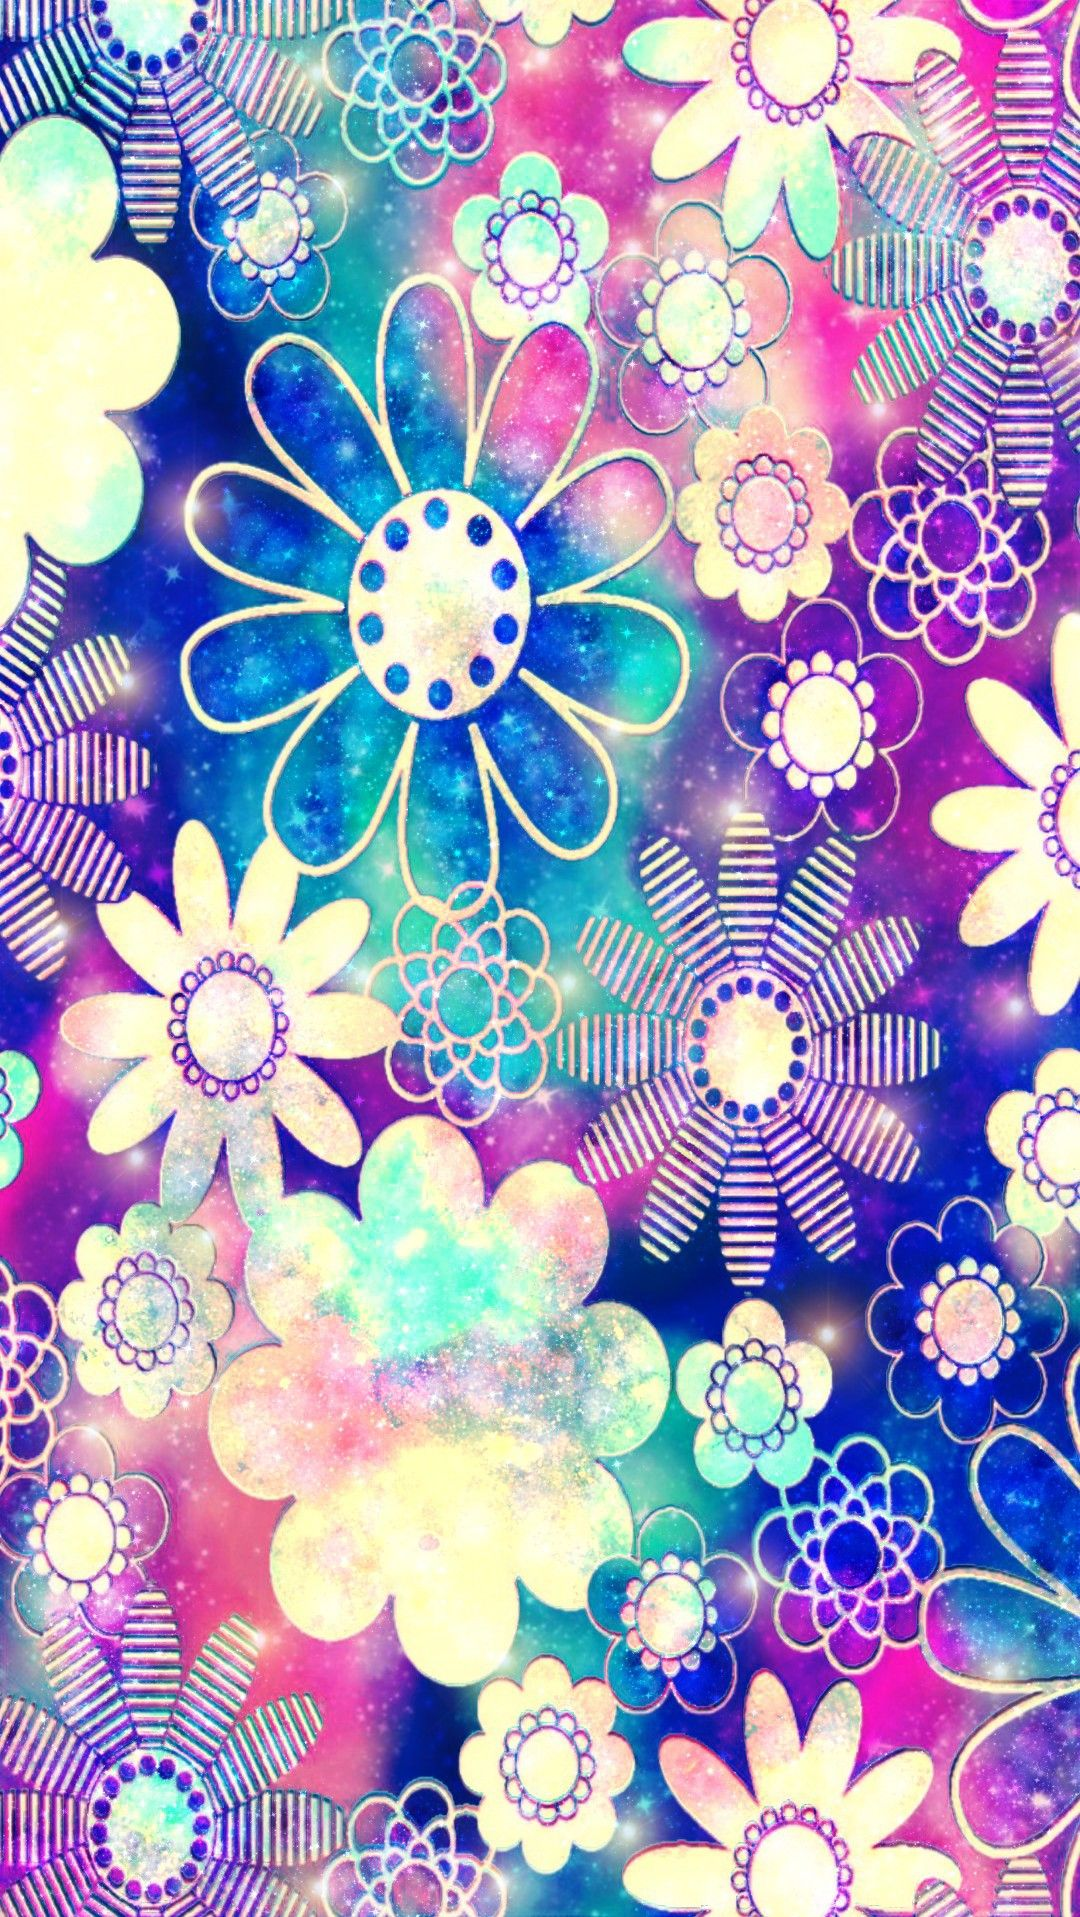 Flower Frenzy Galaxy Made By Me Patterns Colorful Glitter